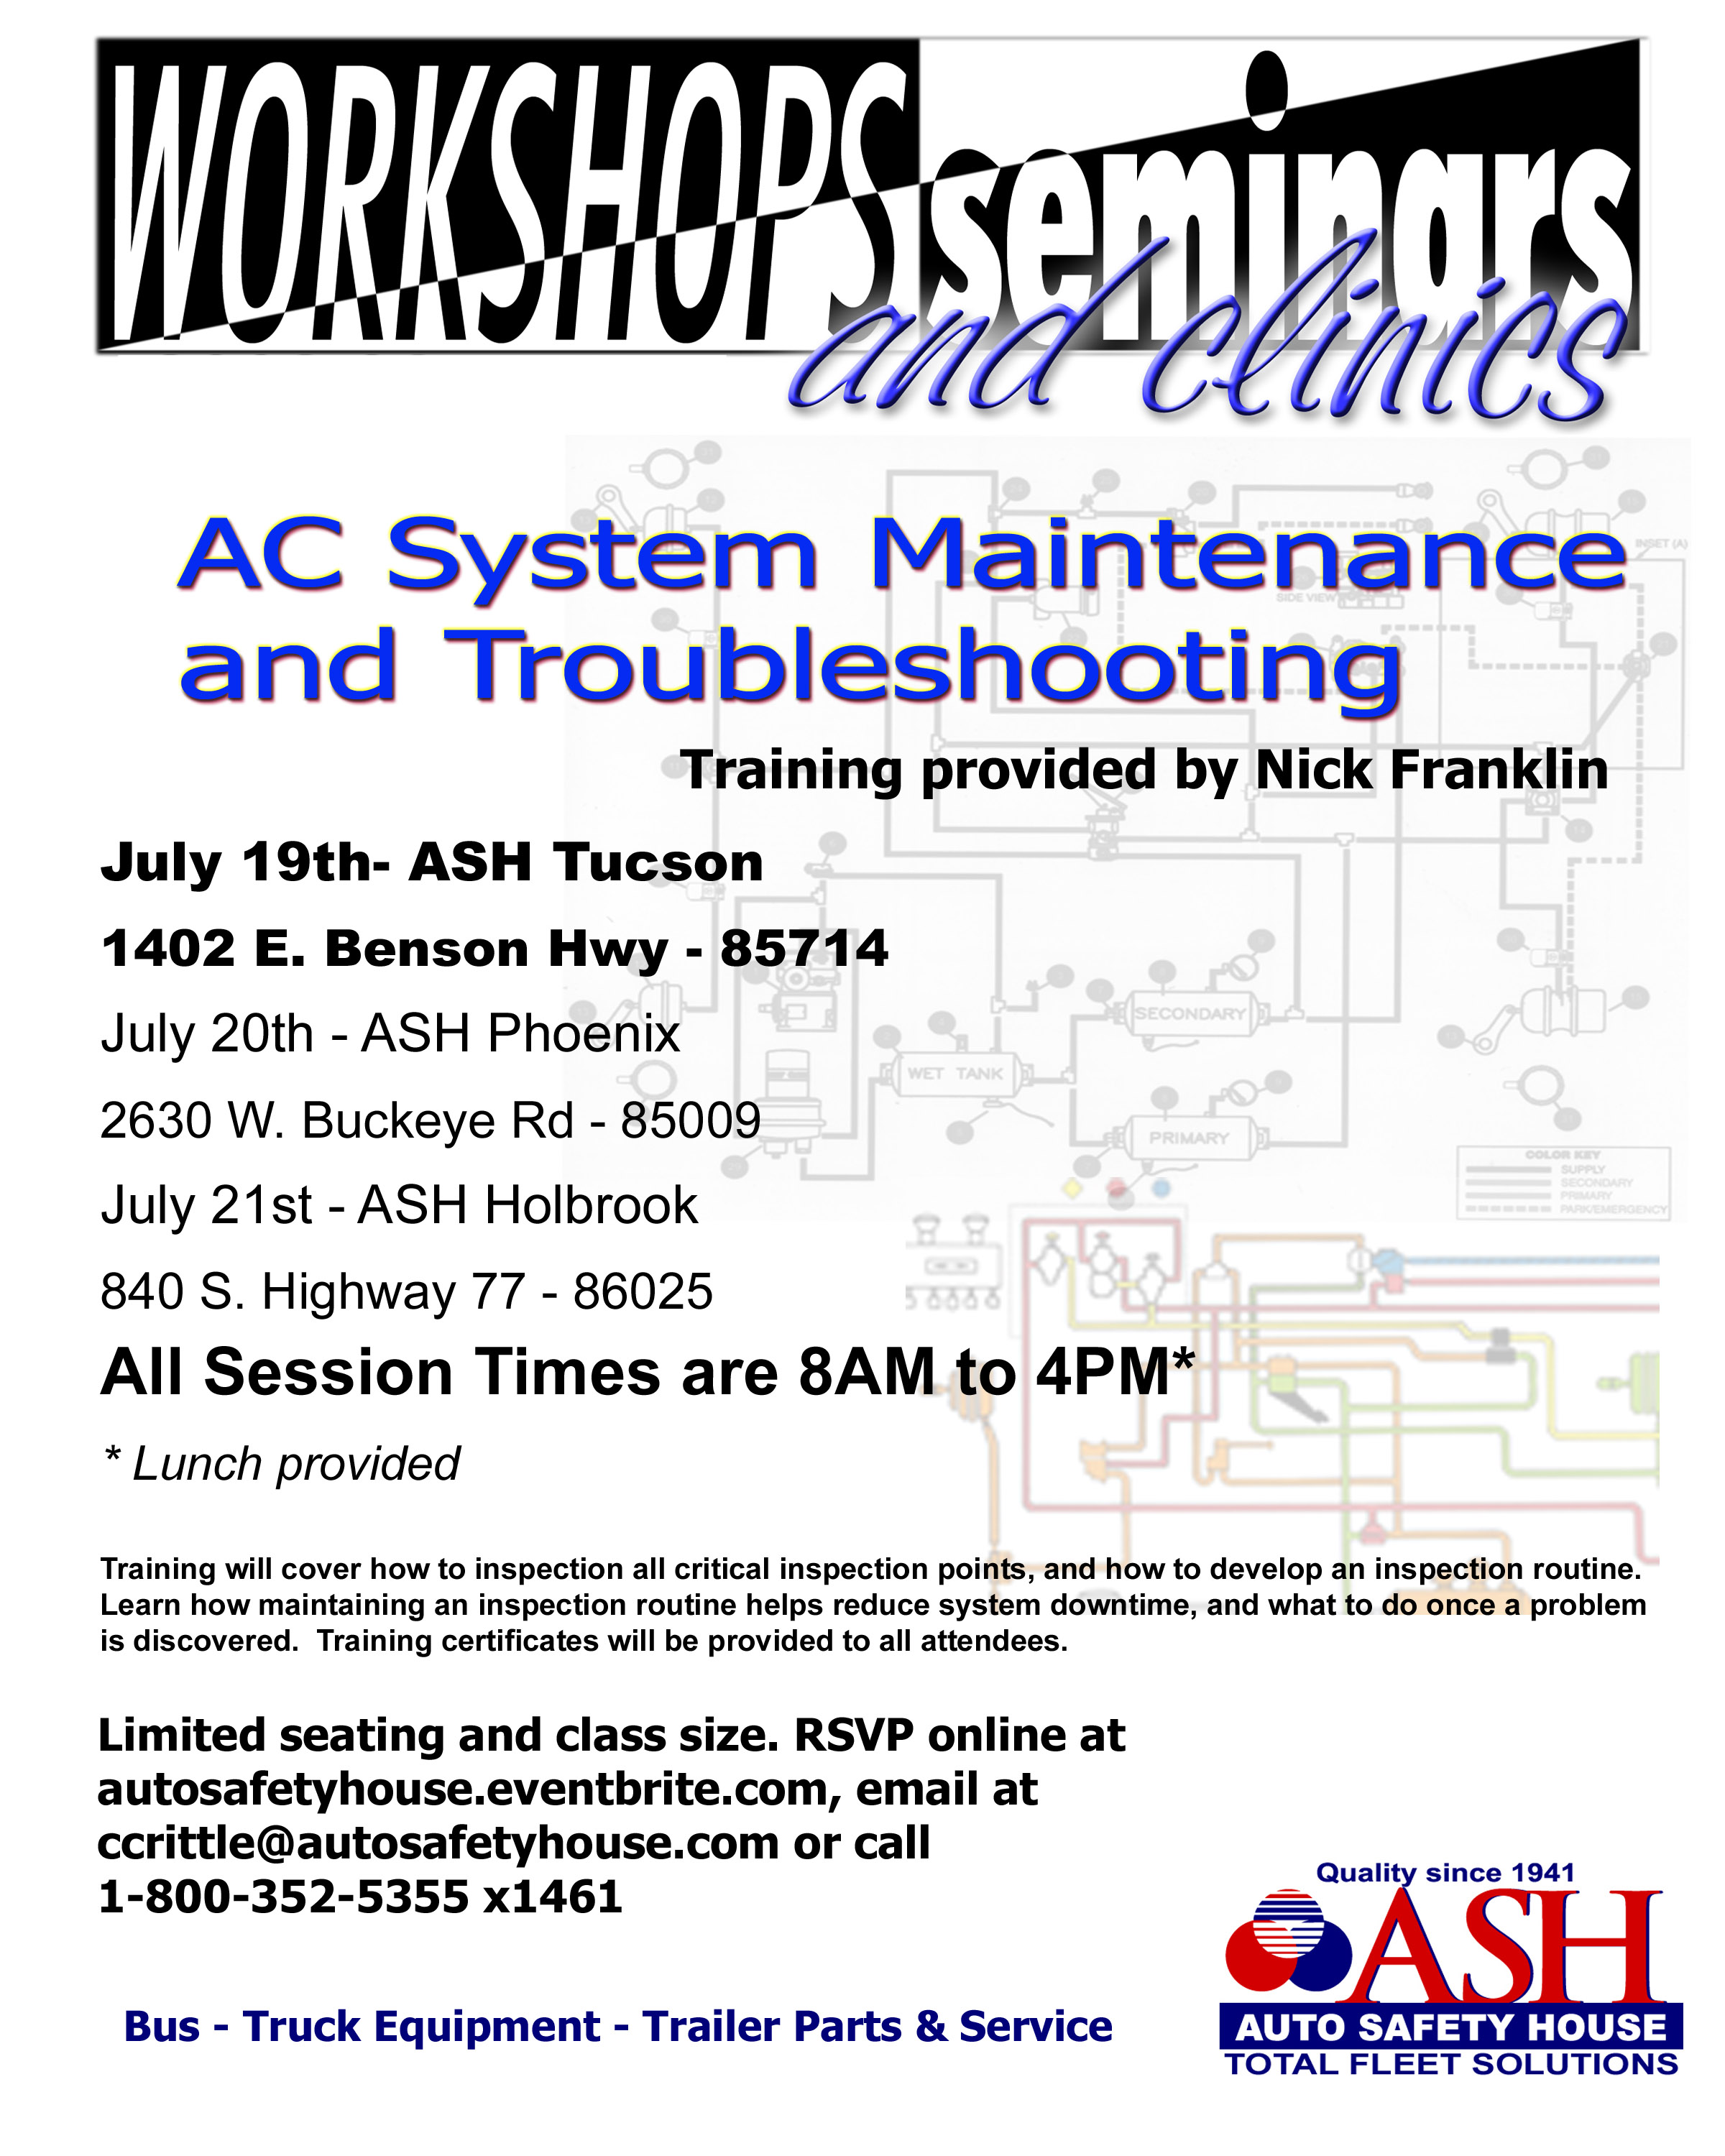 AC Systems Maintenance and Troubleshooting Flyer